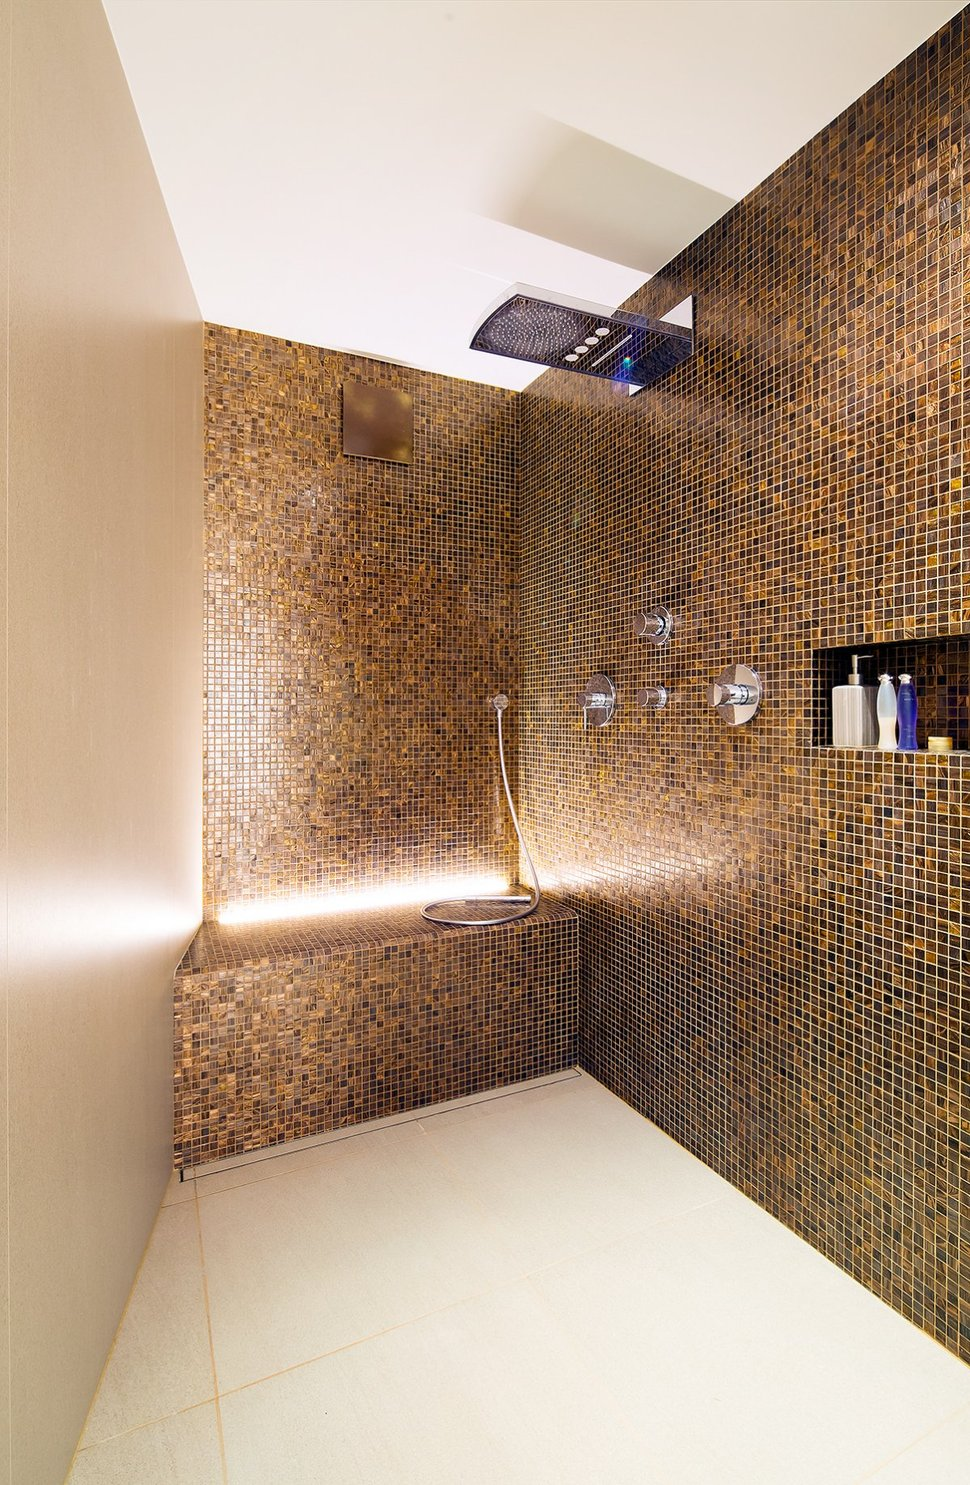 Mosaic Tiles For Bathroom Wall And Bench Modern Shower Unit Fix Bathing  Properties Shelf White Ceramic